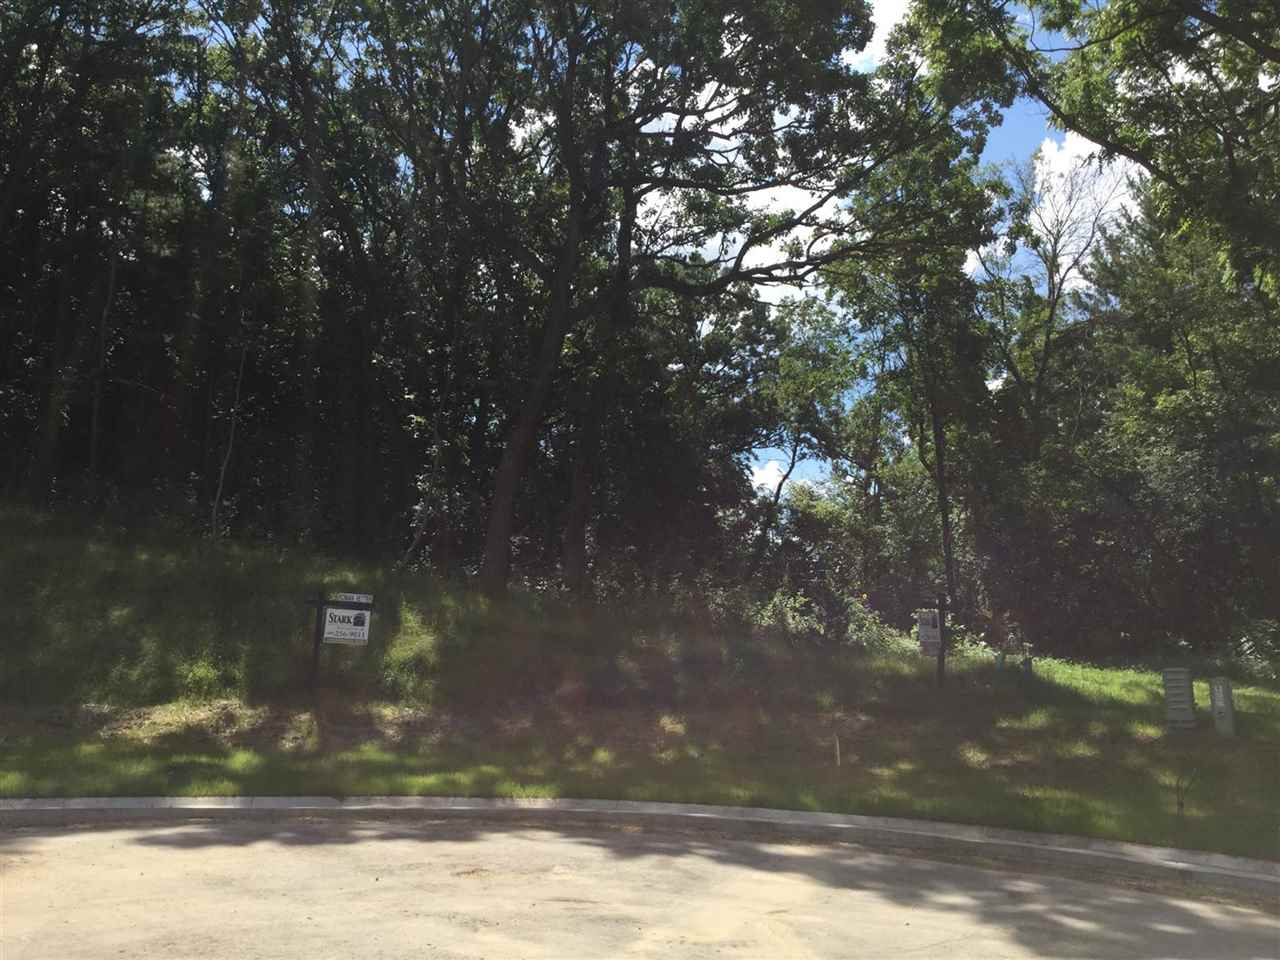 6104 Davenport Dr, MADISON, Wisconsin 53711, ,Lots And Land,For Sale,6104 Davenport Dr,1892048